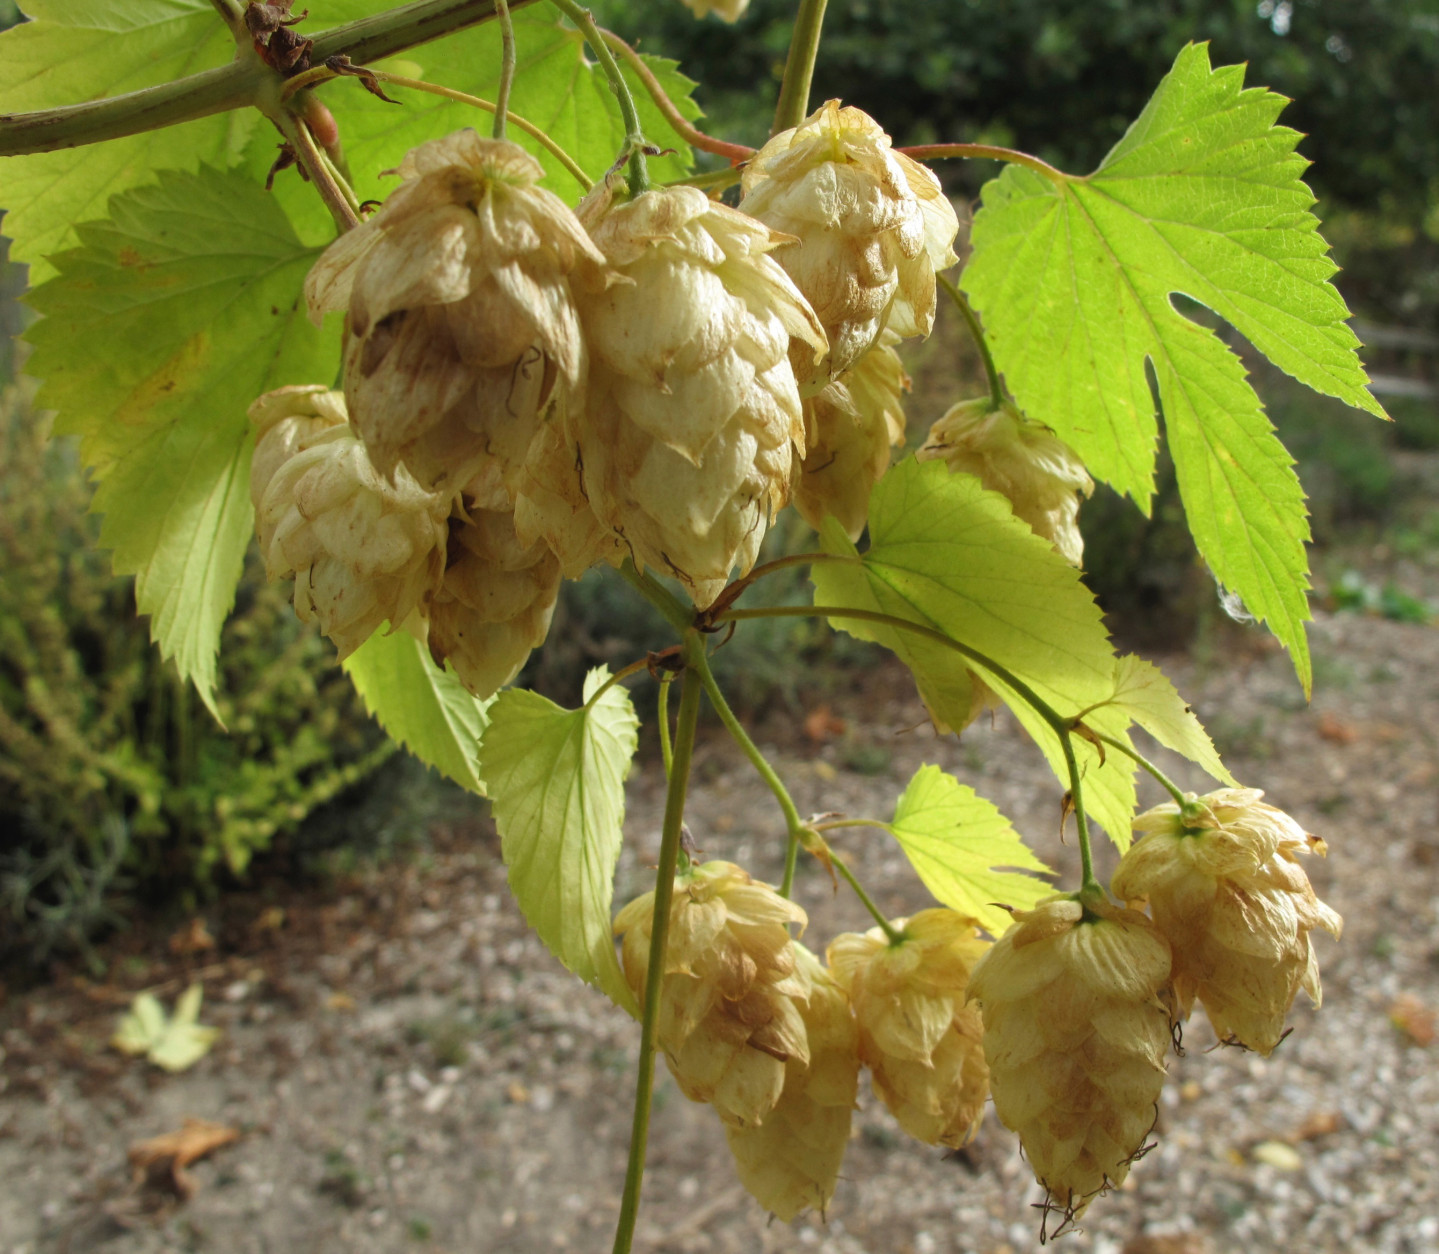 This Oct. 2, 2013 photo shows hop flowers that are both ornamental and edible in a garden in Langley, Wash. Hops are an easy-to-grow perennial that greatly enhance a beer's flavor when picked fresh. (AP Photo/Dean Fosdick)